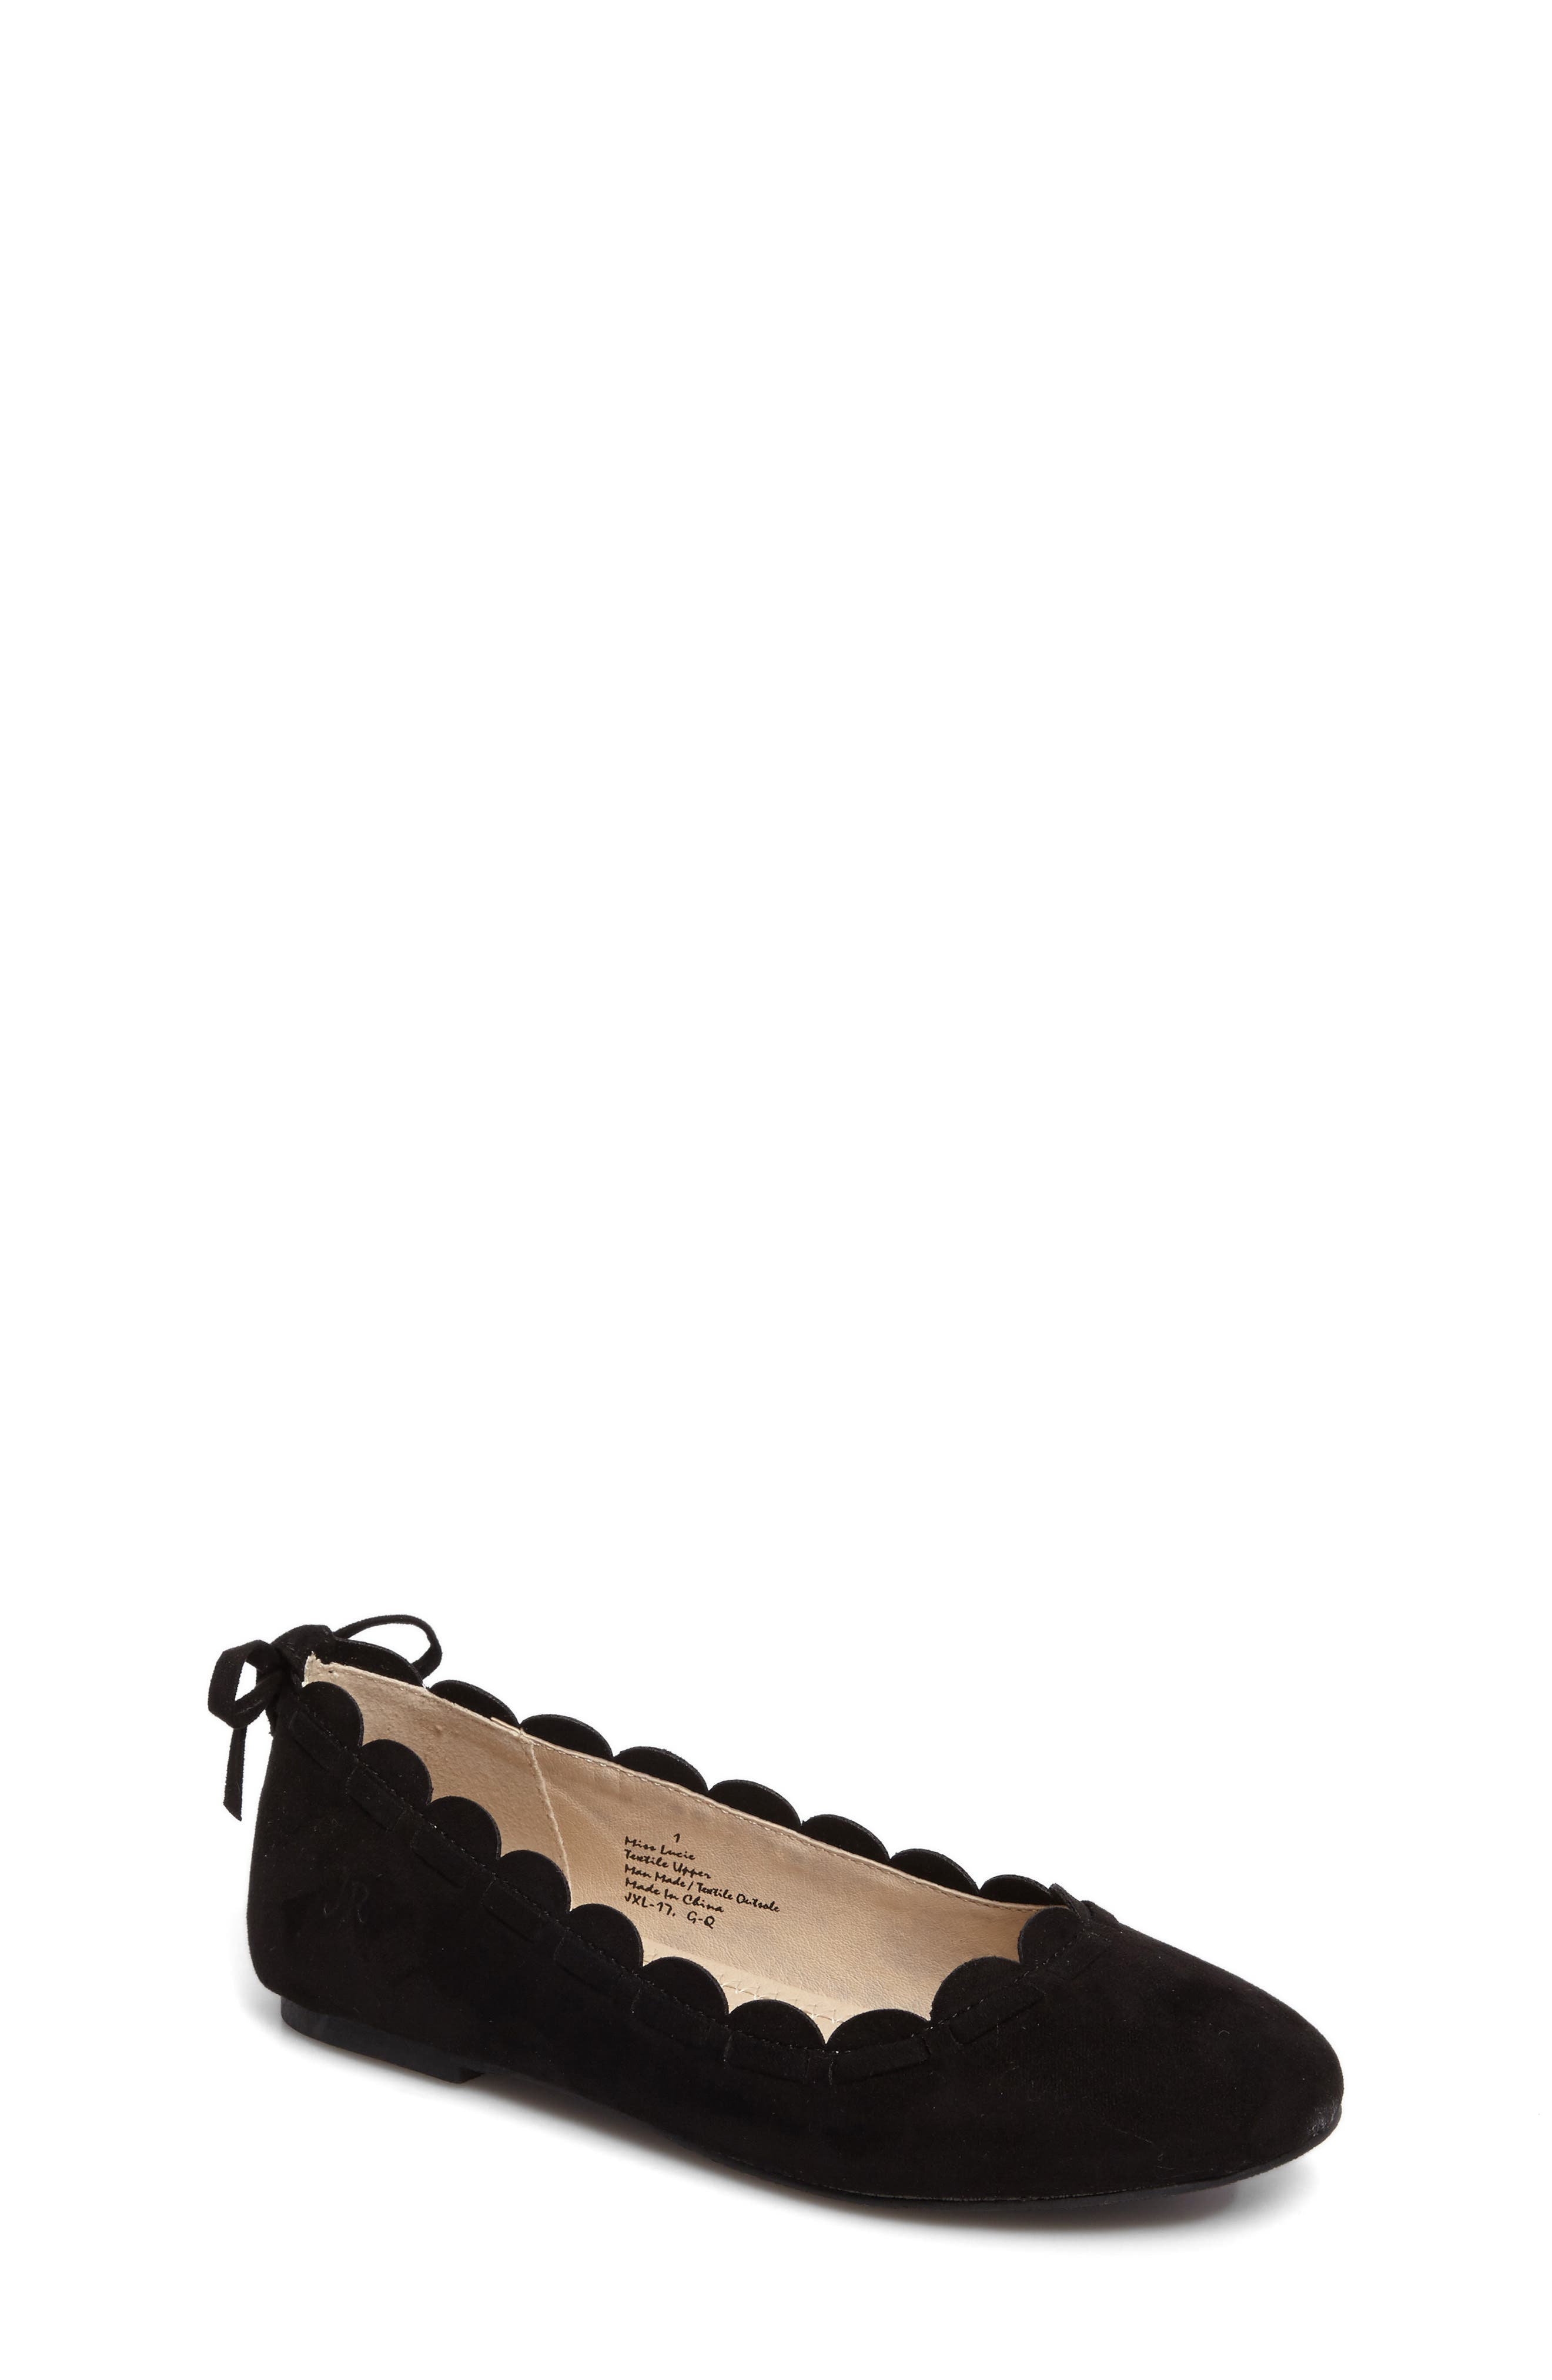 Miss Lucie Scalloped Ballet Flat,                         Main,                         color, 001